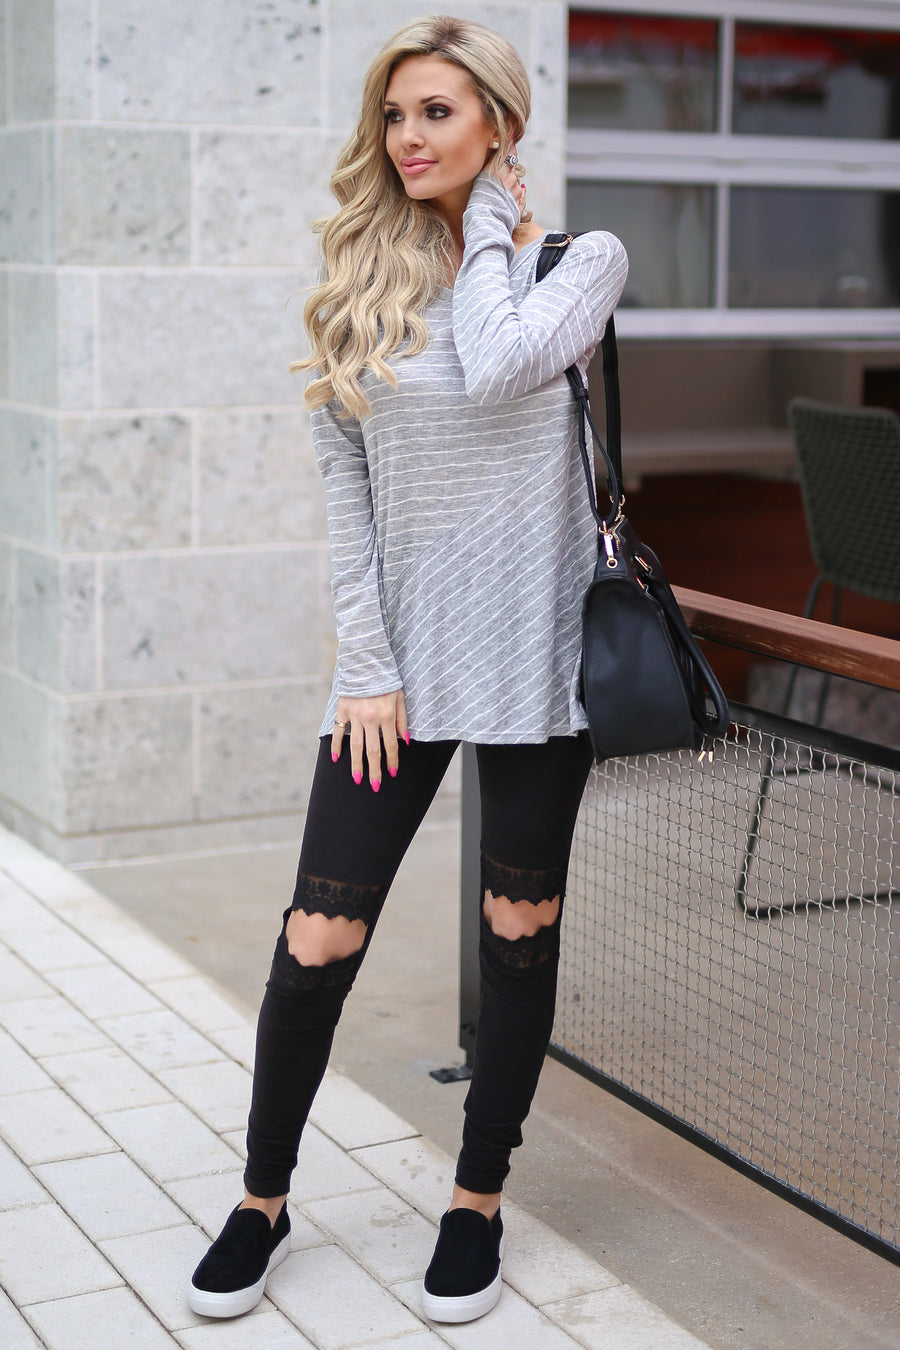 Let It Go Top - Heather Grey stripe long sleeve top, outfit, Closet Candy Boutique